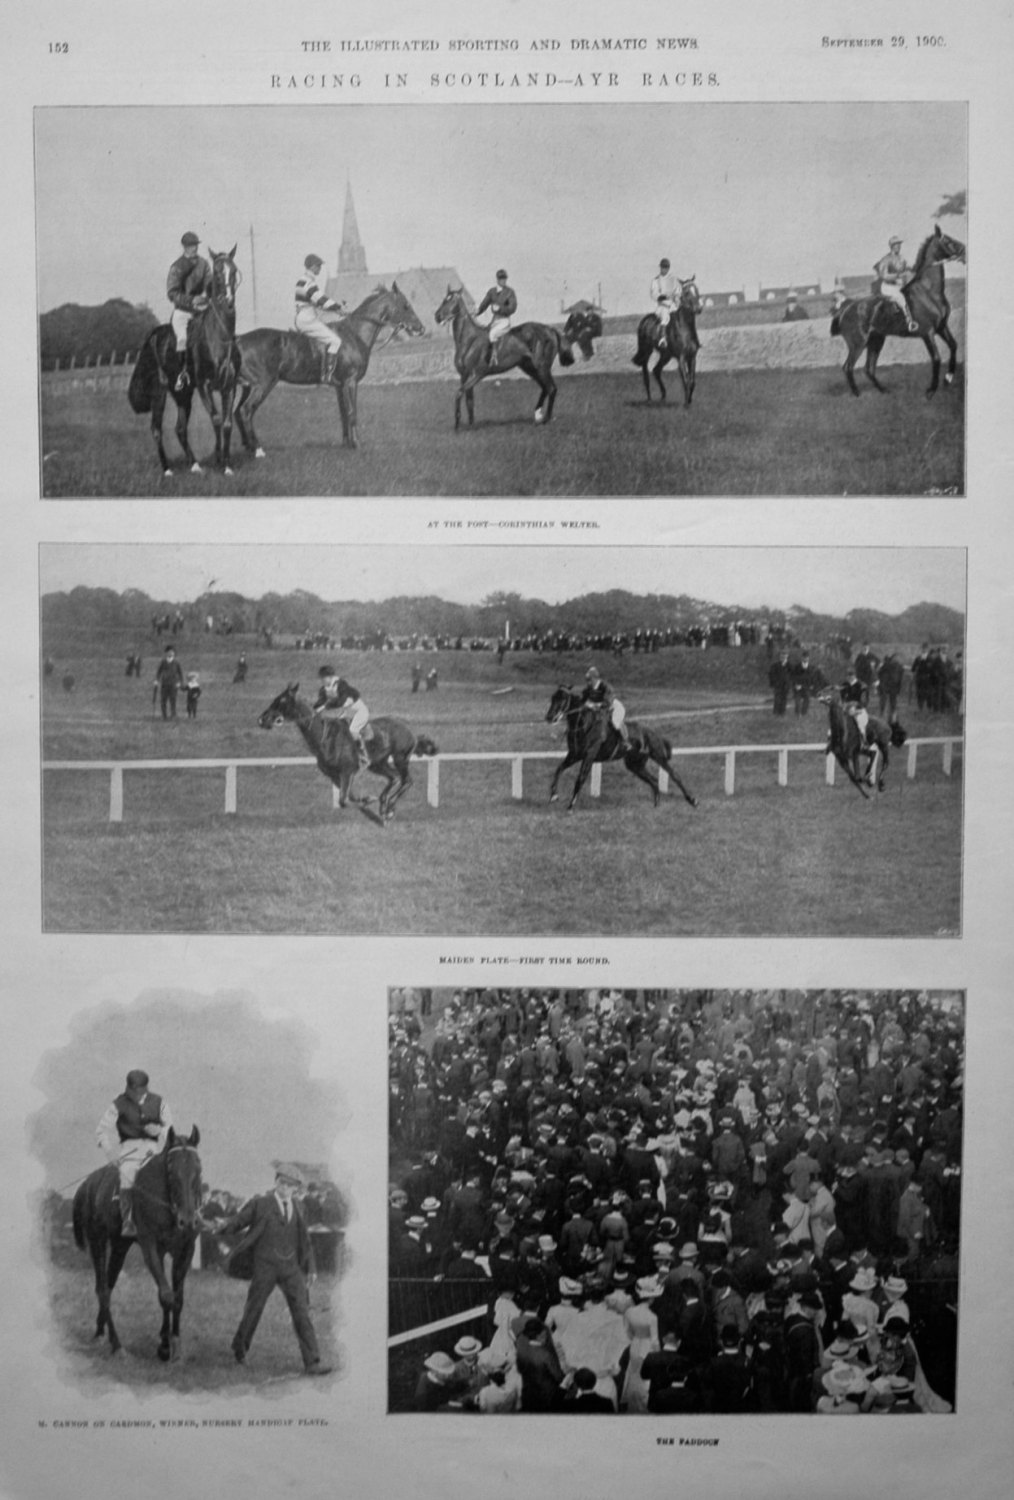 Racing in Scotland - Ayr Races.